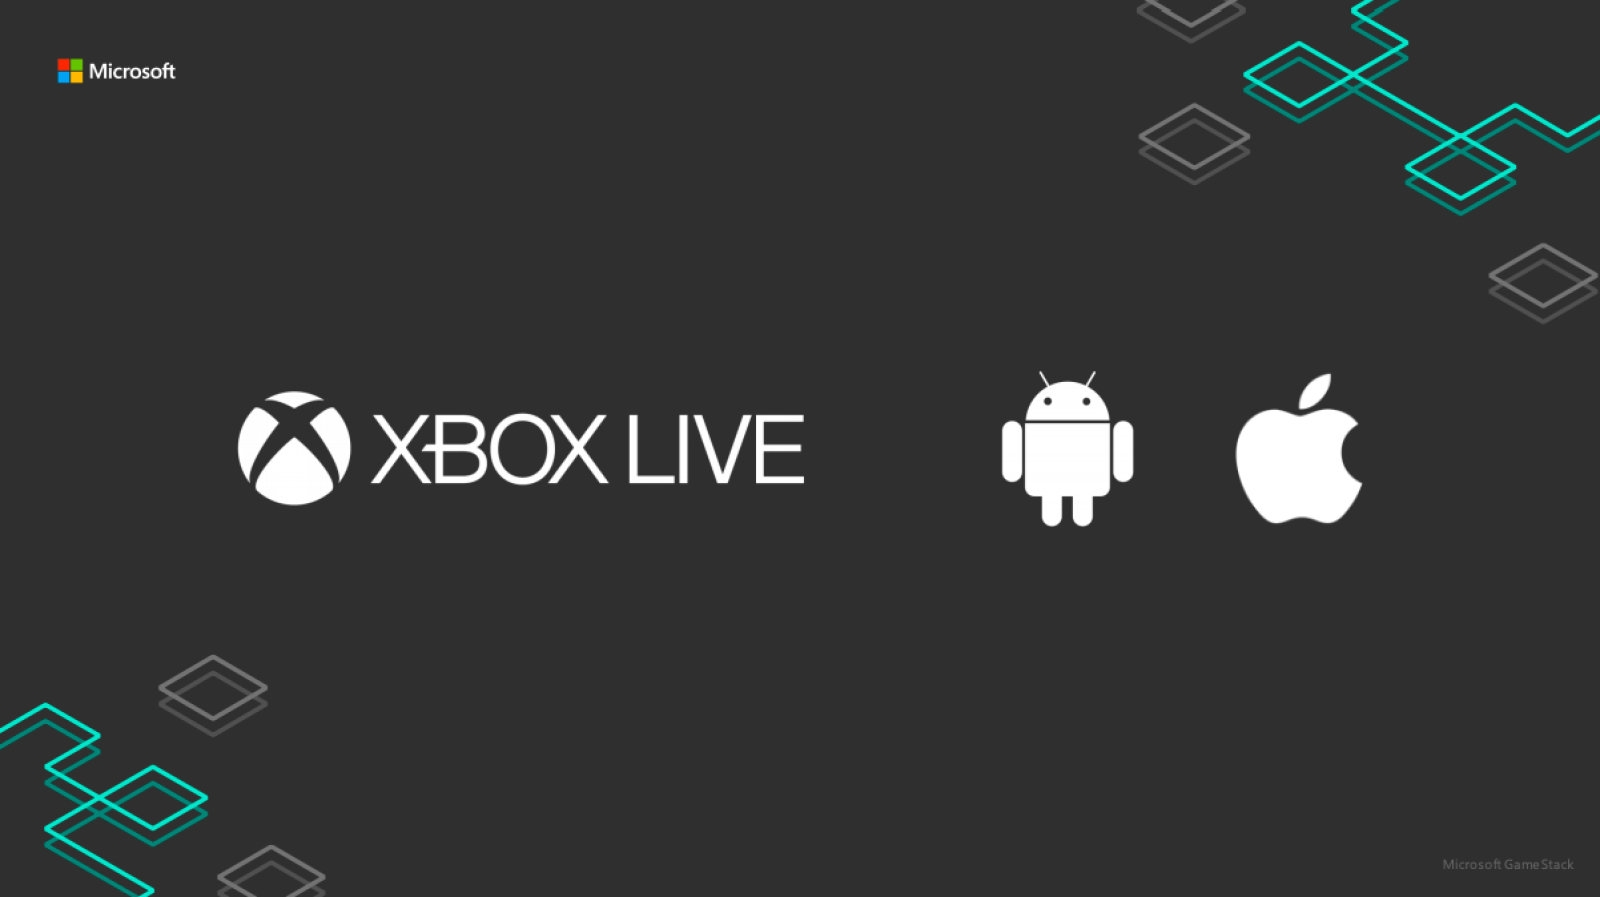 Xbox Live expands to mobile in Microsoft's big streaming push | DeviceDaily.com